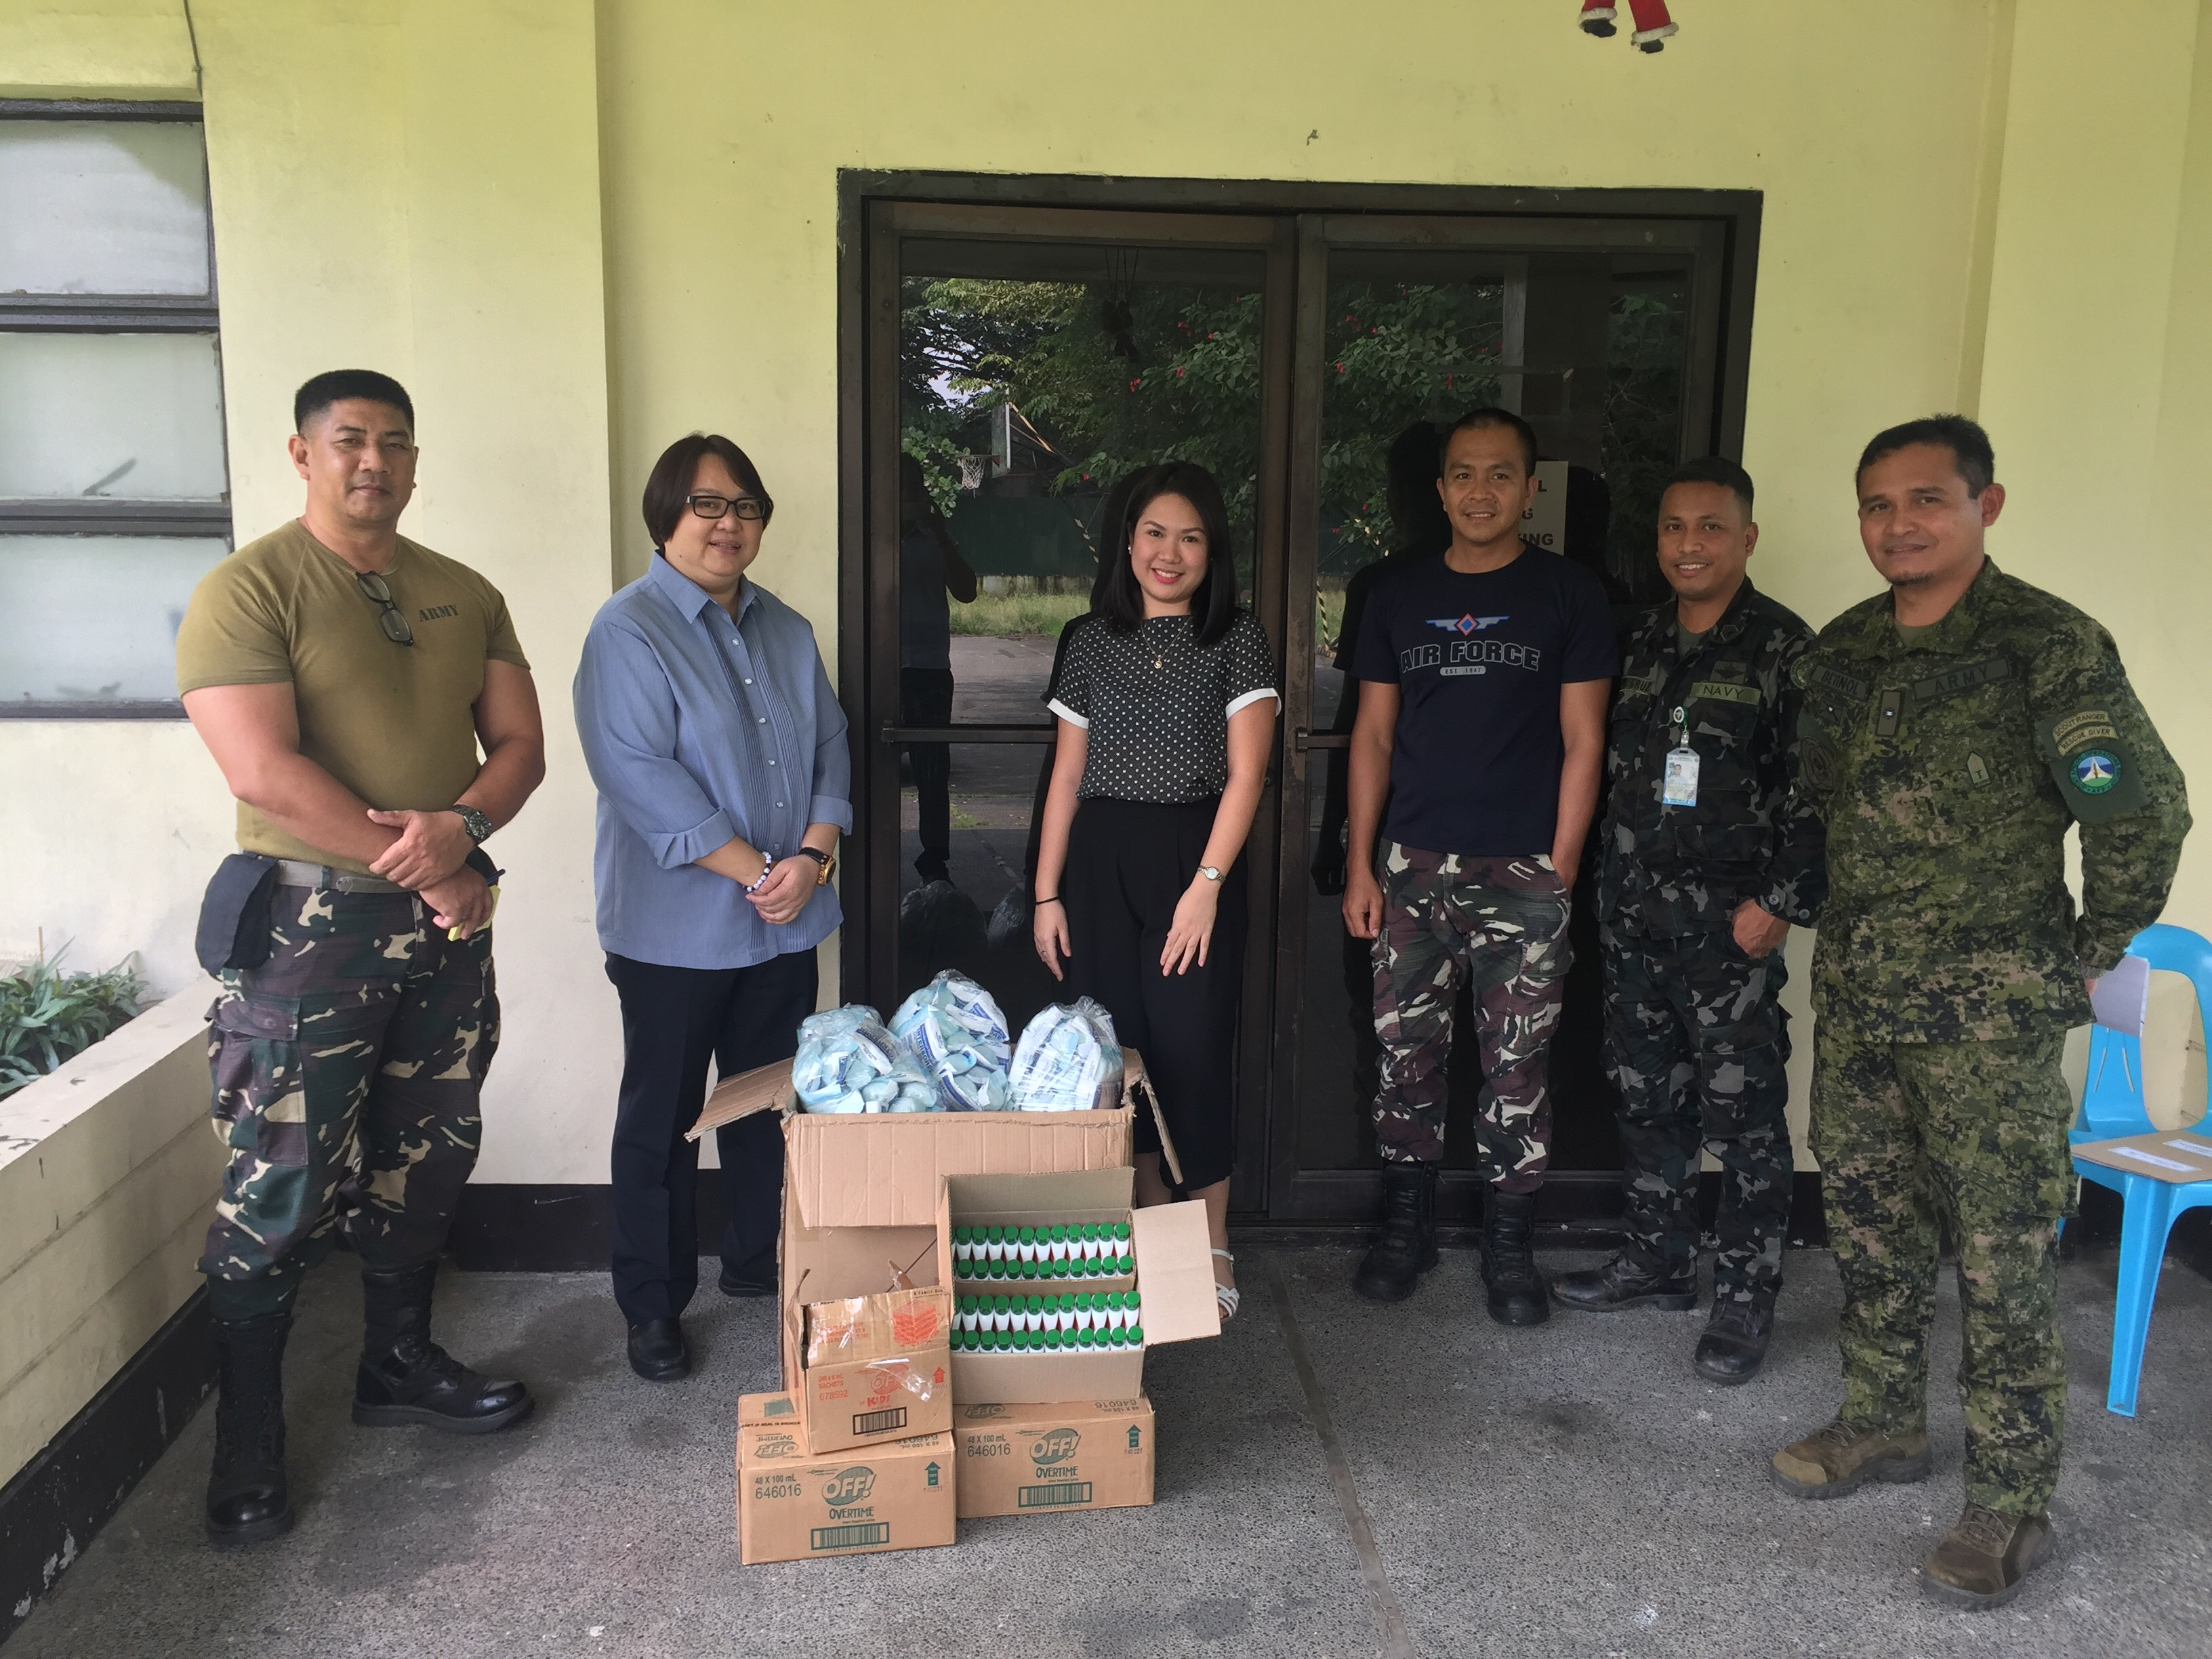 L-R: TSg Caranza, PA (Army), BM Miranda, PRA Asst. Secretary General, Mayan Sangil, PRA Advocacy & Communications Officer, SSg Espedido, PAF (Airforce), PO2 Dela Cruz, PN (Navy), Maj. Eliseo Betinol Jr., PA (Army)